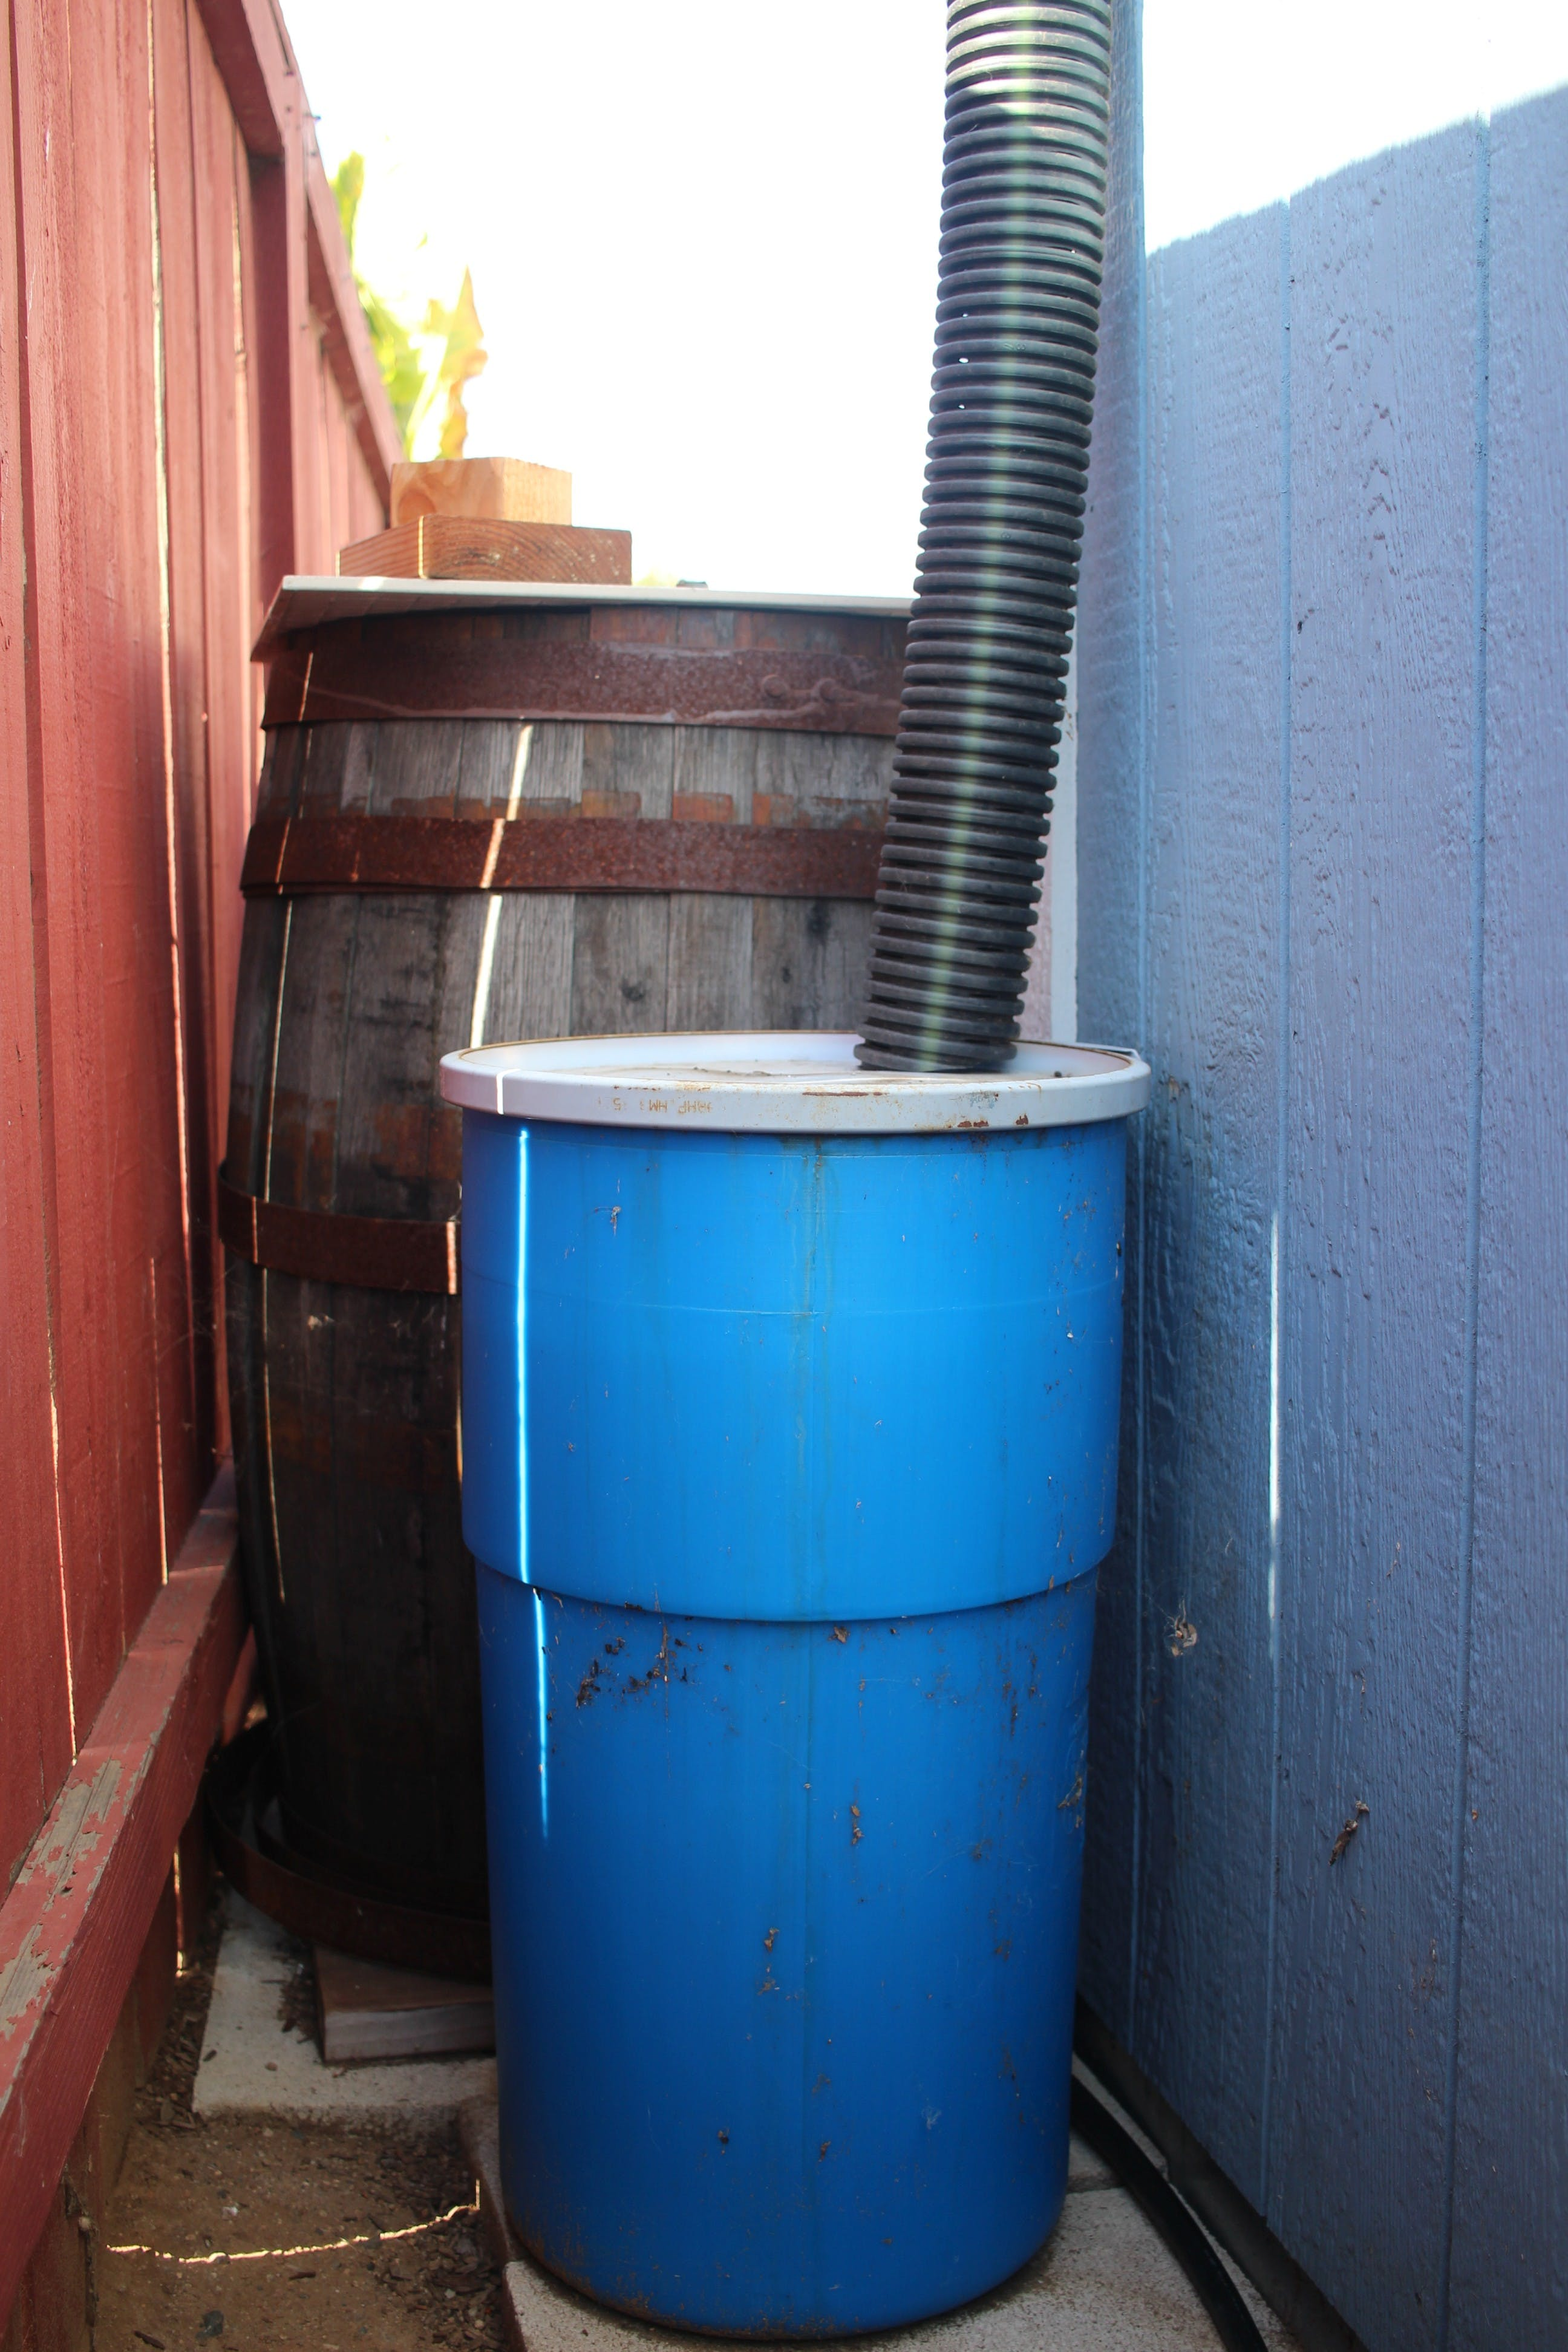 Prototype rain barrel (13 gallons).  Eventually there will be 55 gallon drums in all three wine barrels